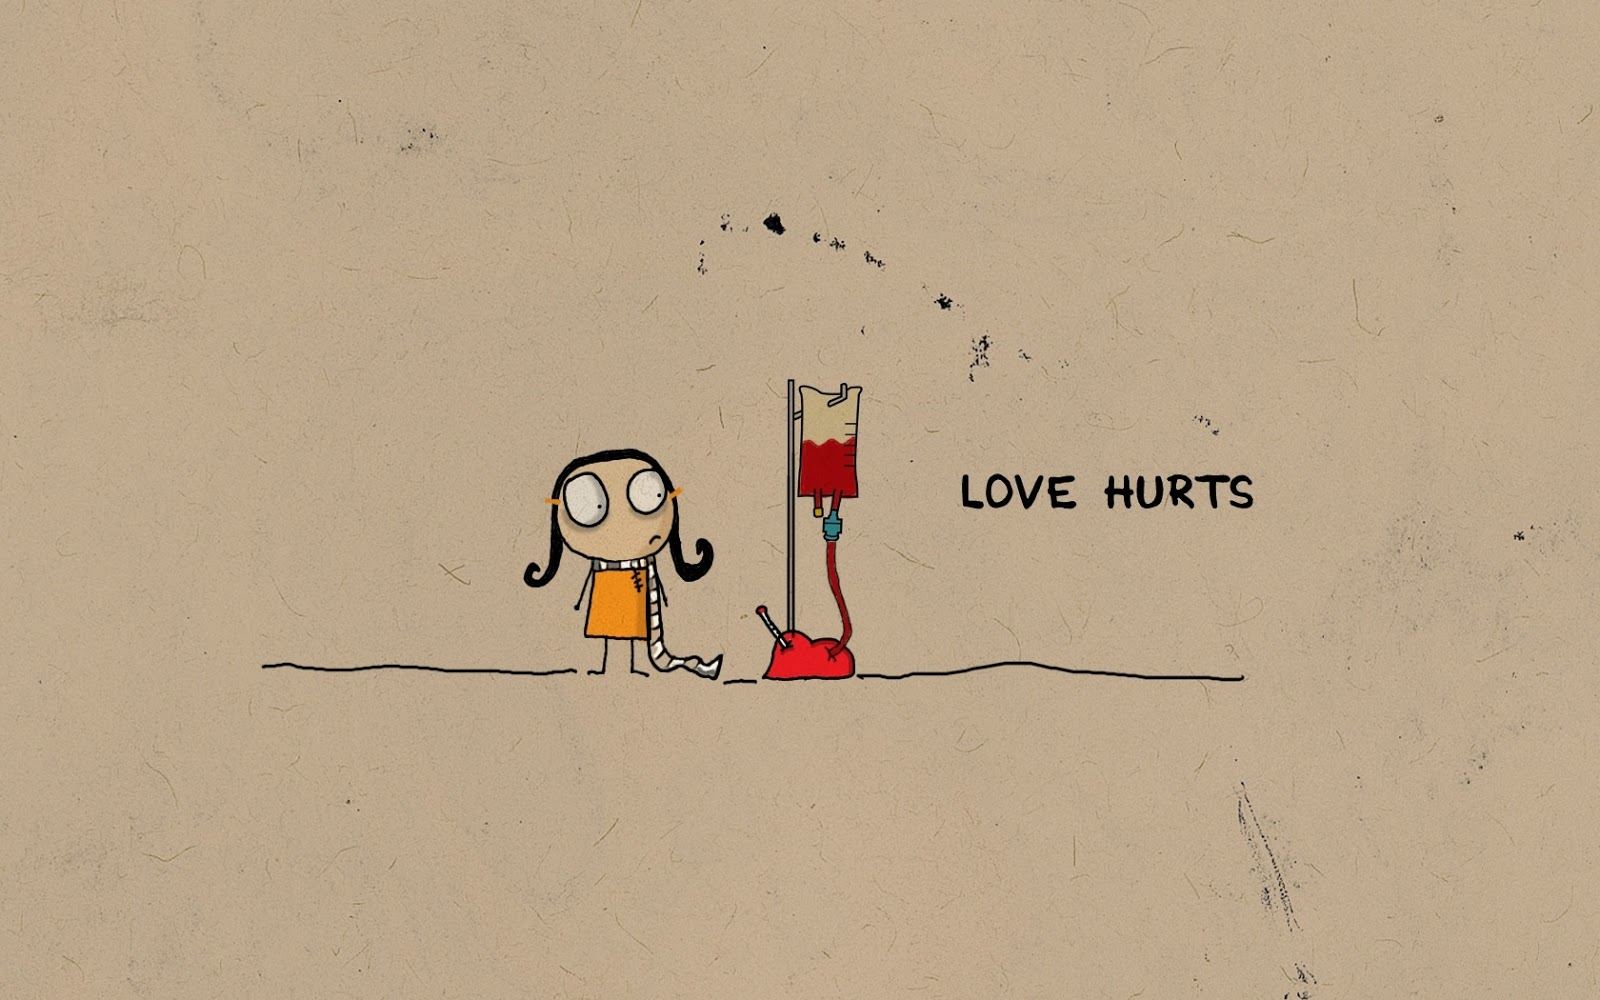 Girl Propose To Boy Wallpaper With Quotes Pain Of Love Hurts Quotes Images For Sad Heart Pixhome